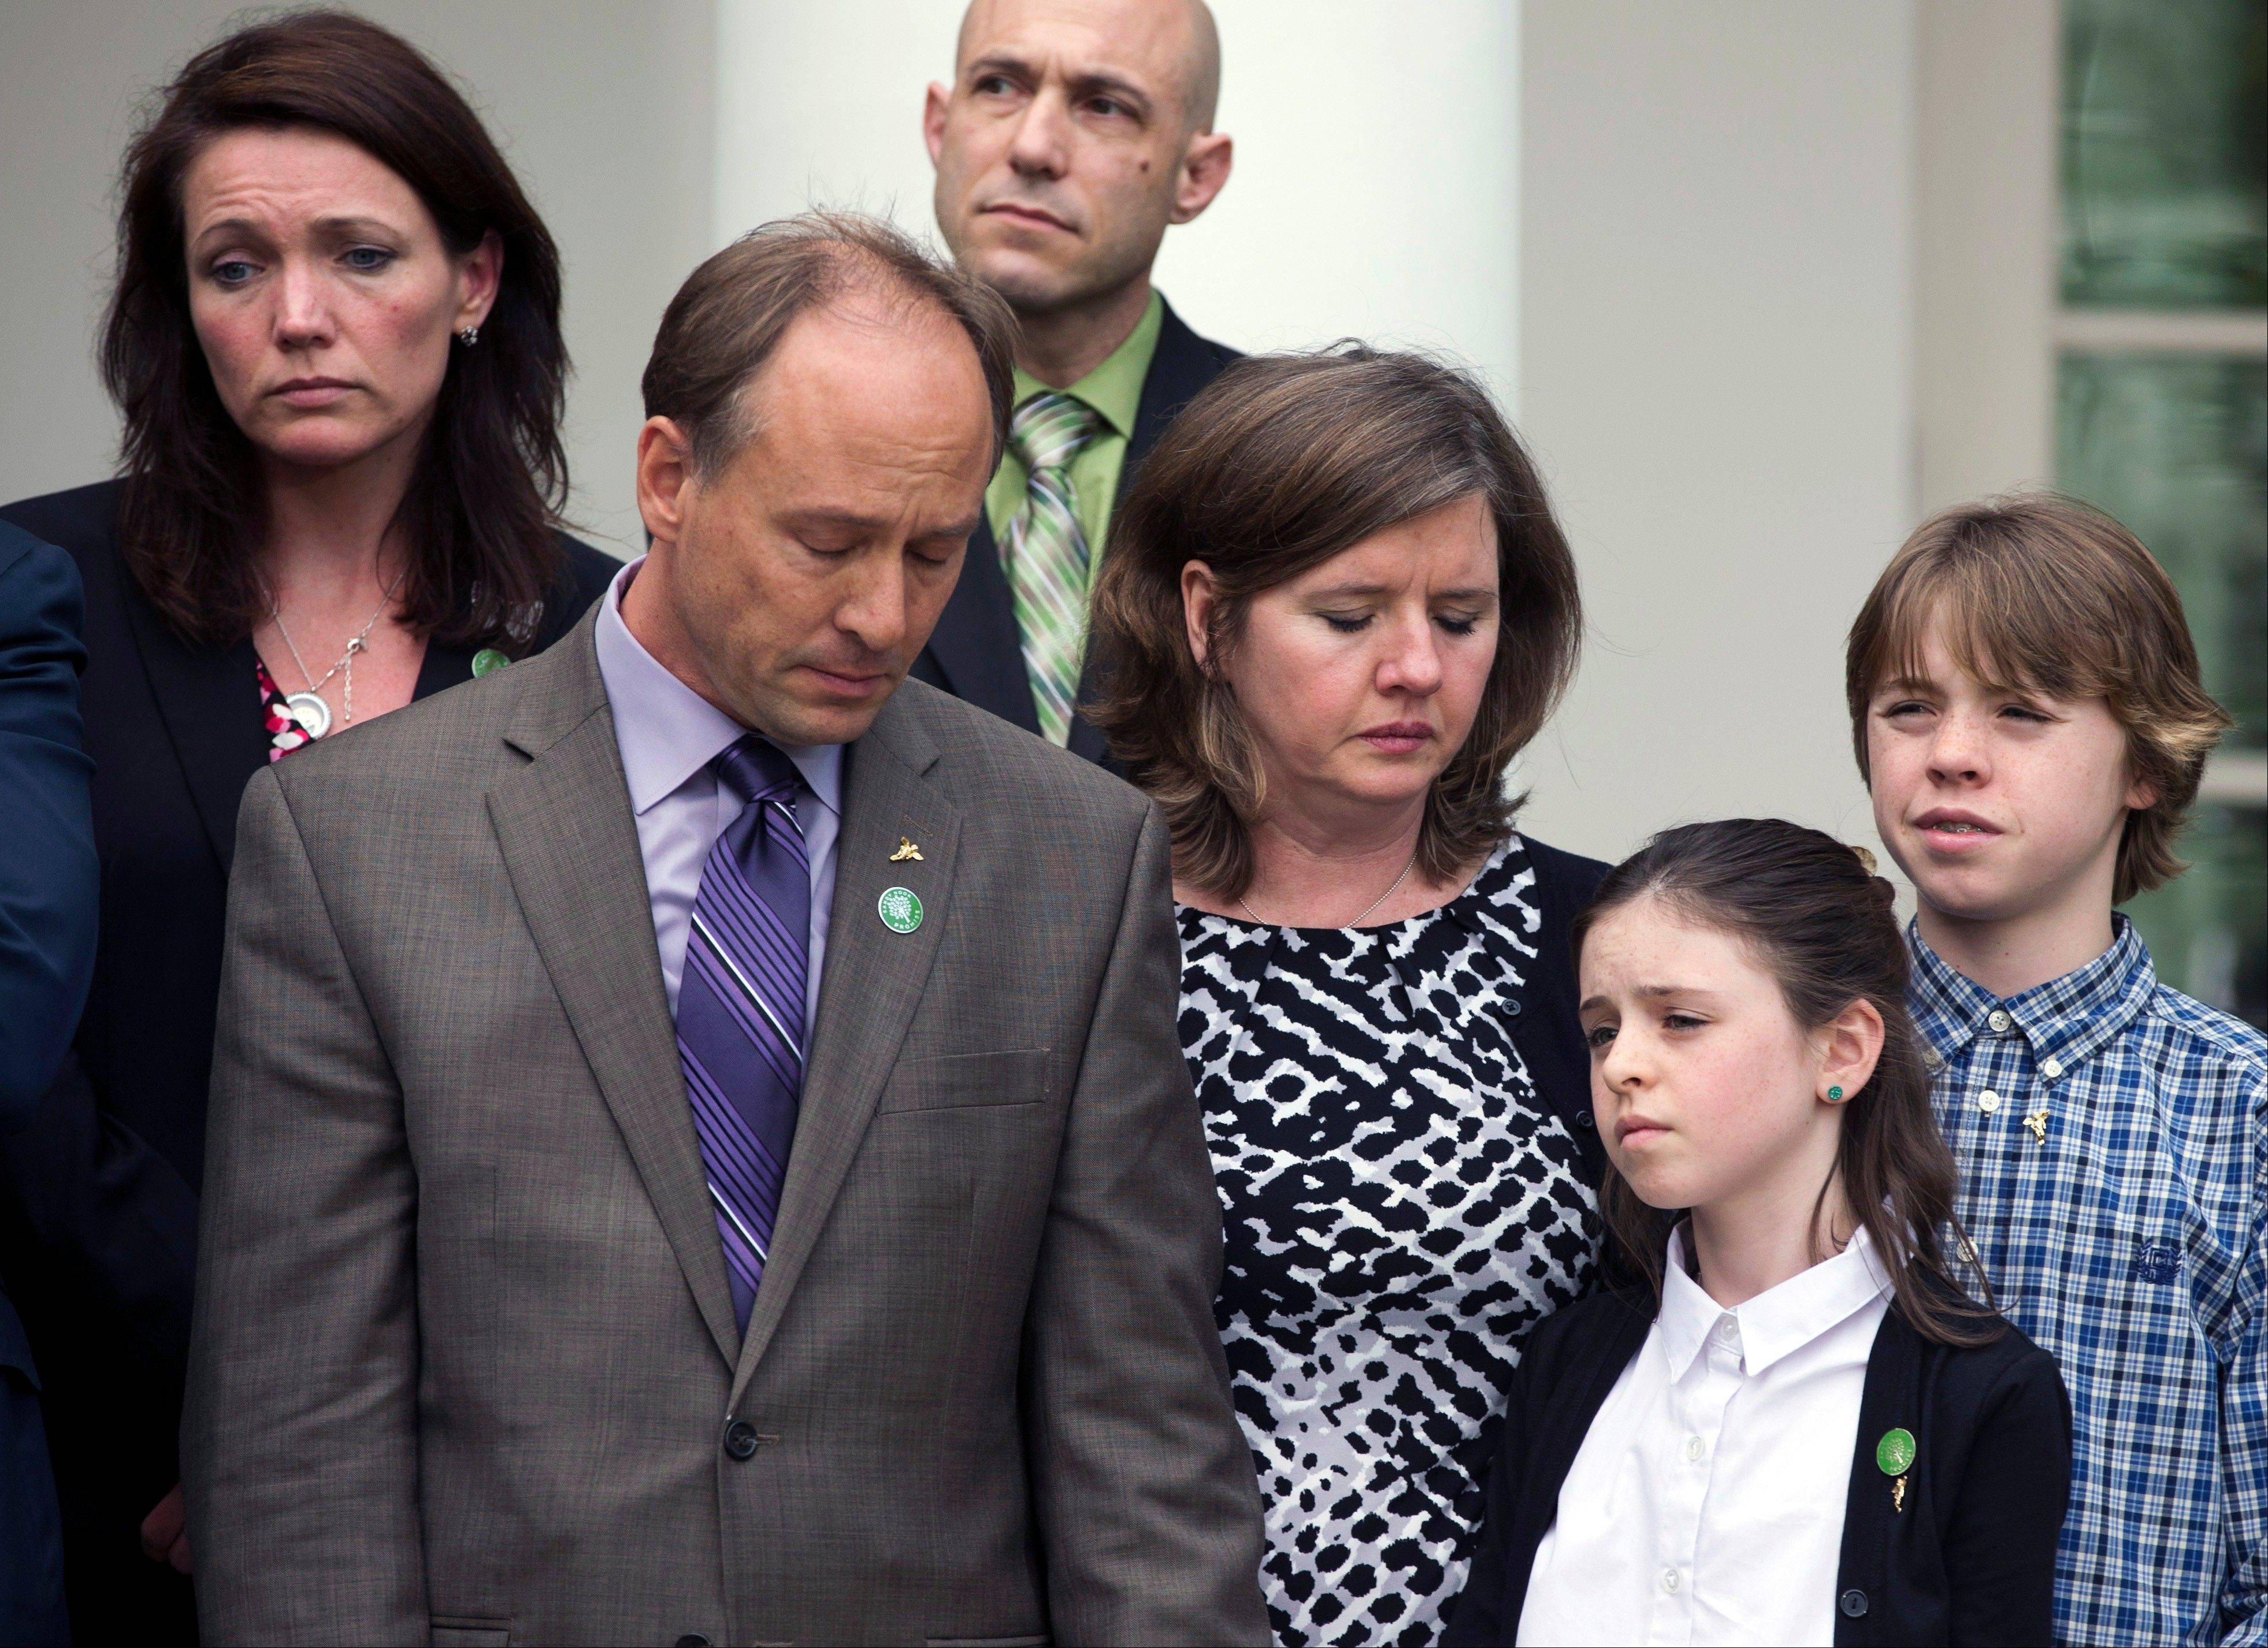 Family members of those lost in the Newtown, Conn. school shooting, Mark and Jackie Barden, with their children Natalie and James, who lost Daniel; Nicole Hockley, mother of Dylan, upper left, and Jeremy Richman, father of Avielle in the back, stand together as President Barack Obama speaks in the Rose Garden of the White House, Wednesday, April 17, 2013, in Washington. Obama spoke about measures to reduce gun violence and a bill to expand background checks on guns that was defeated in the Senate.